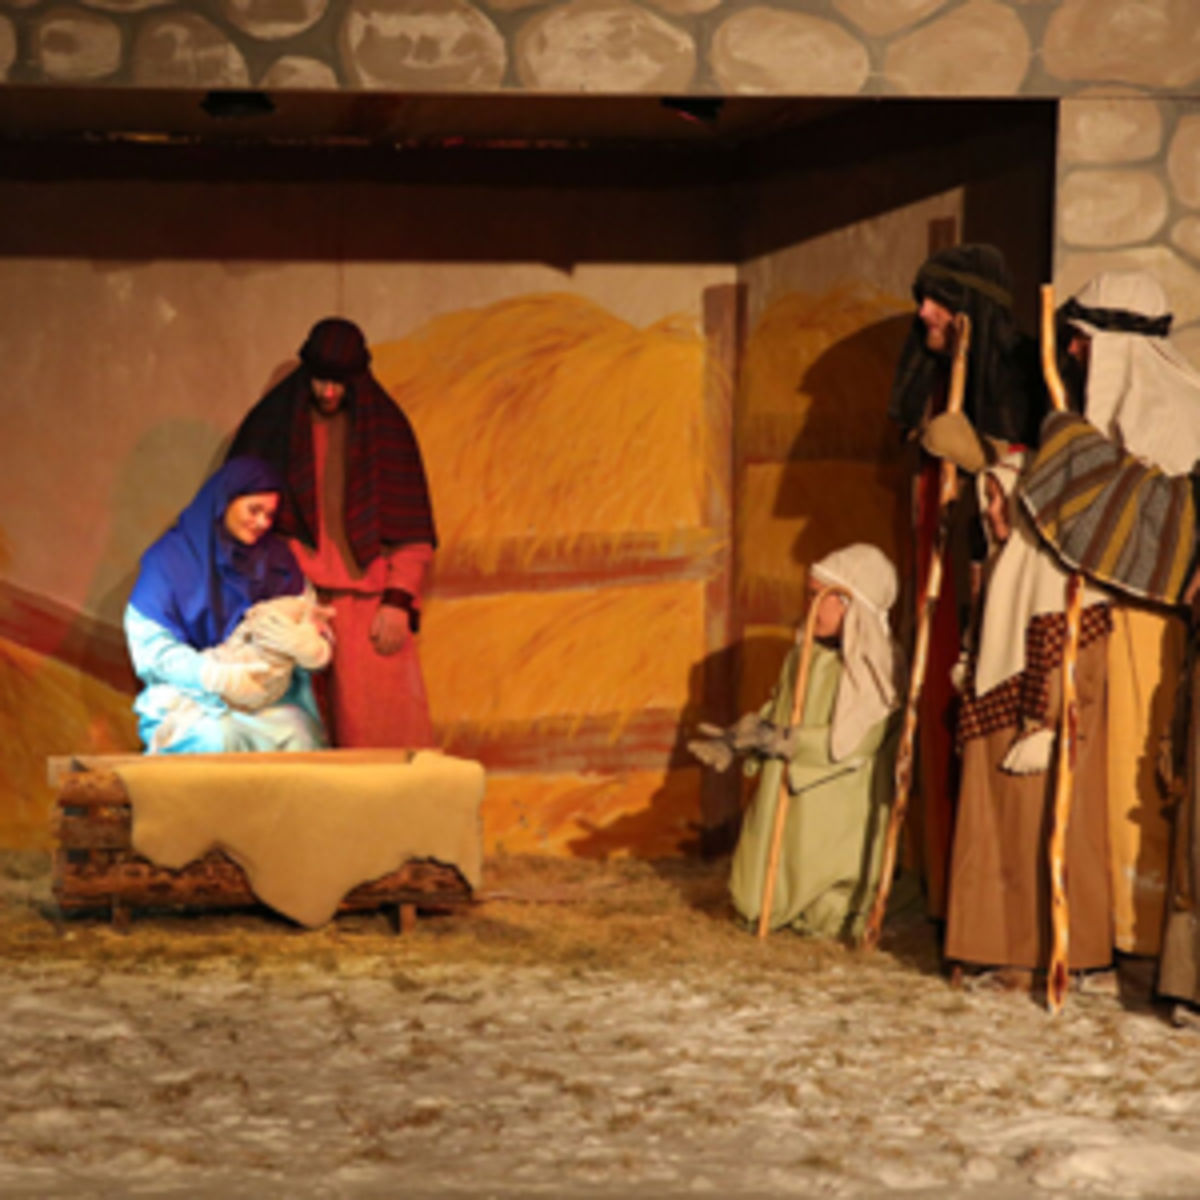 Shephards with Joseph and Mary